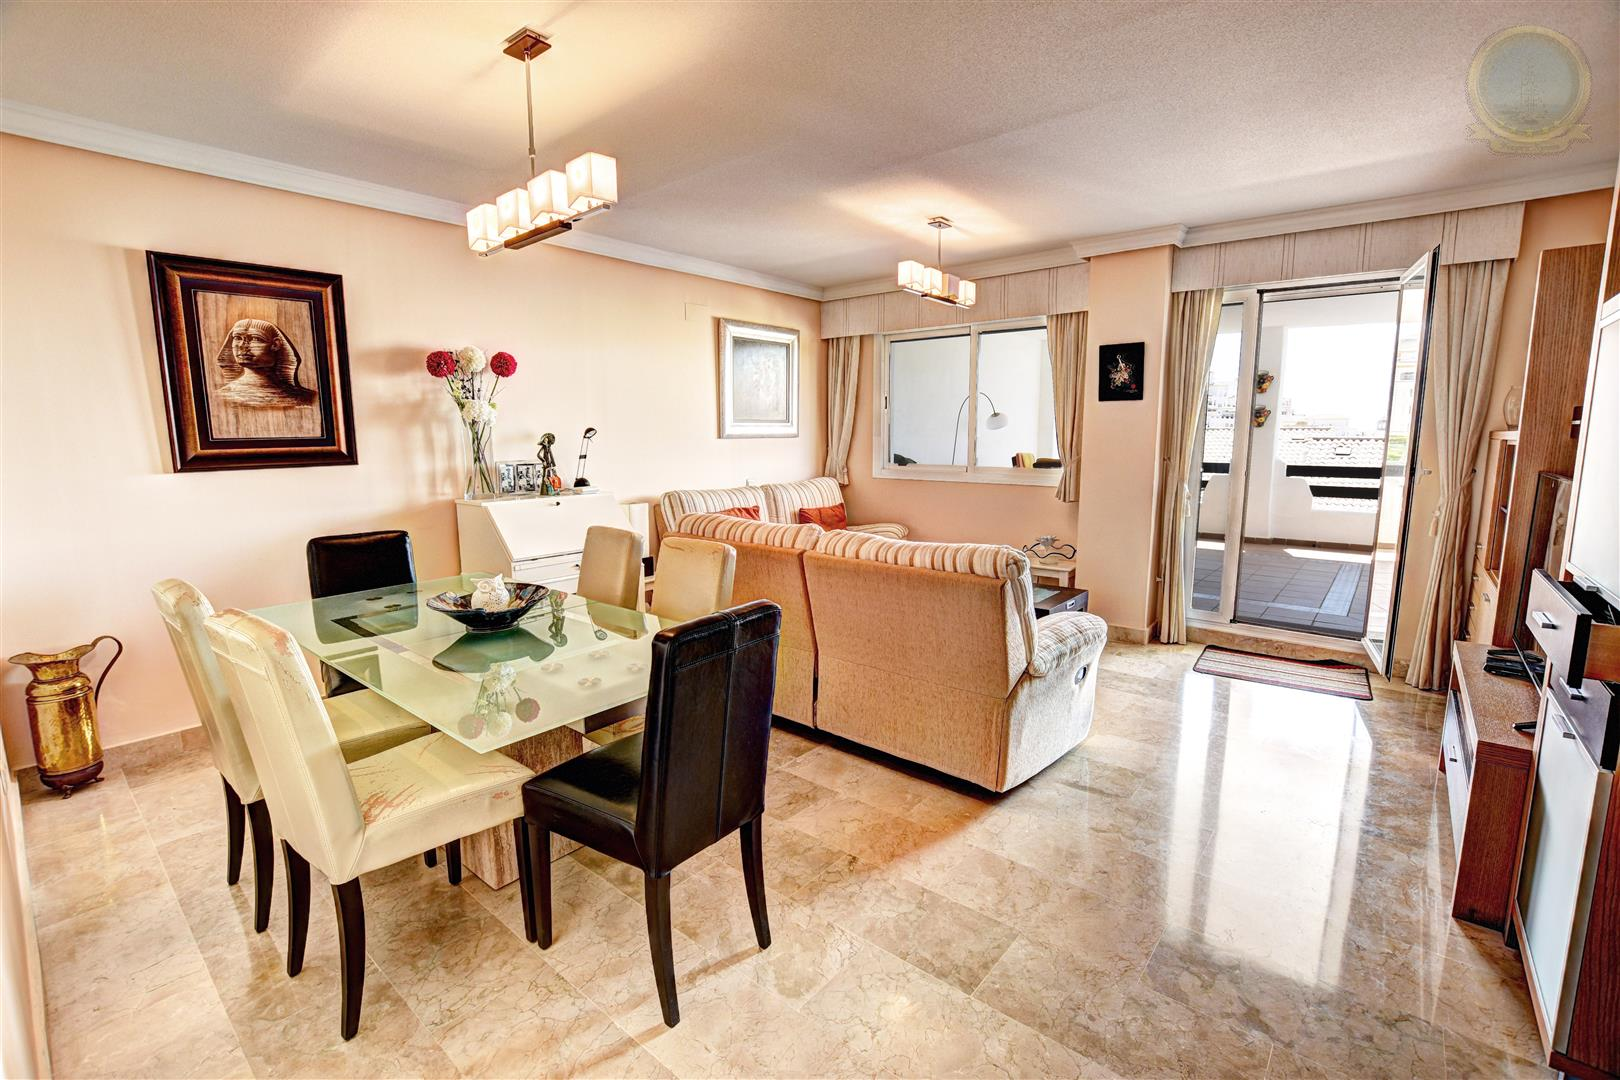 apartment for sale in Atalaya Golf Torrequebrada - Lounge